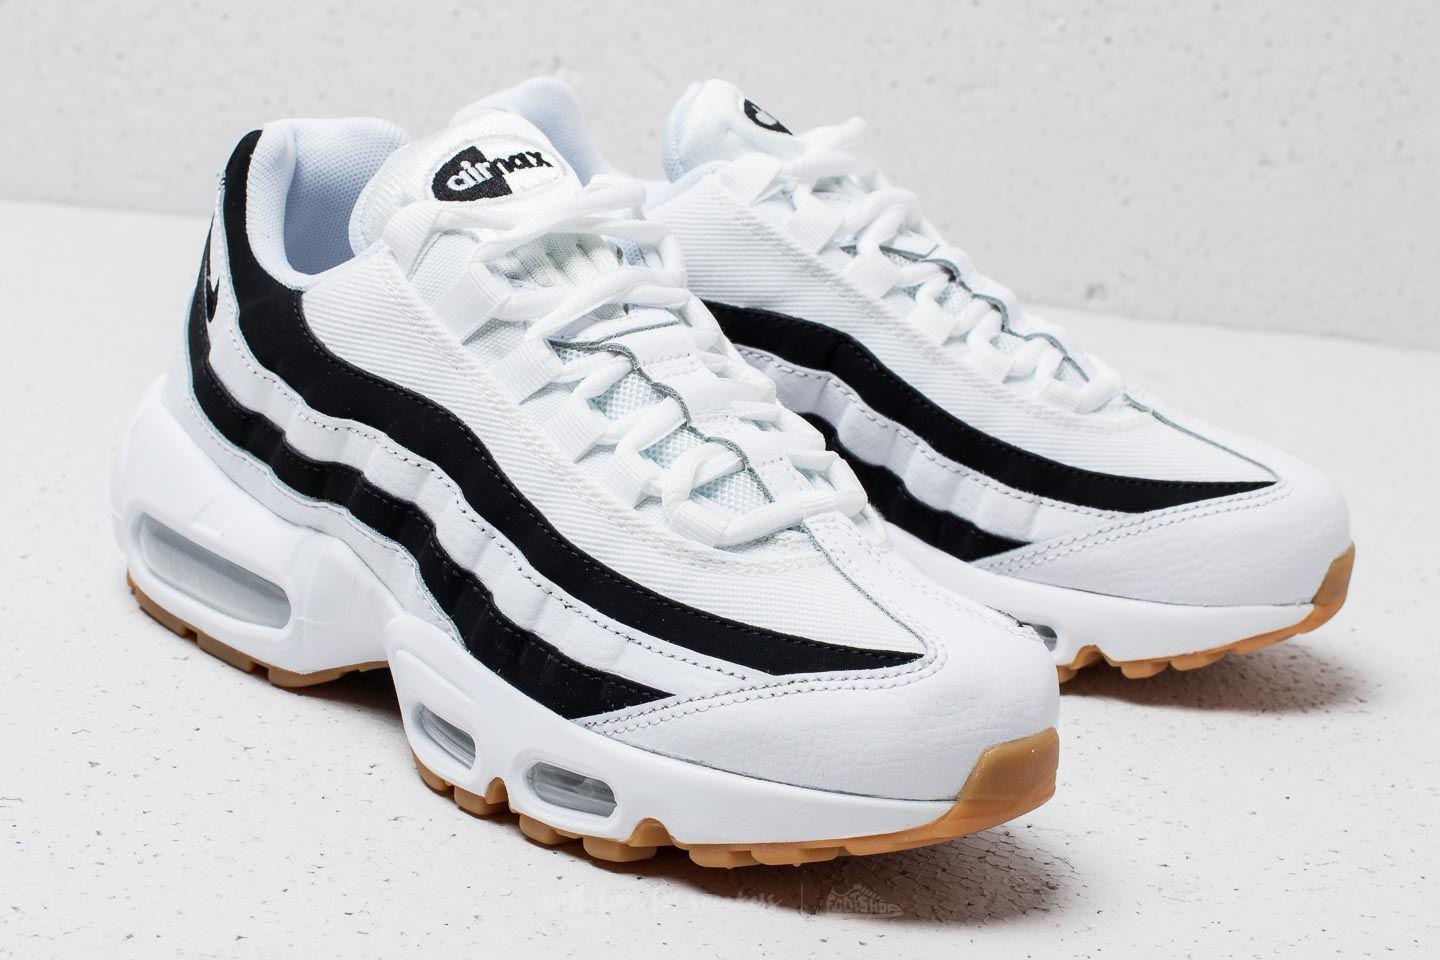 uk availability d93c0 bca73 ... australia lyst nike wmns air max 95 white black gum light brown in  white ab0a1 2b1eb